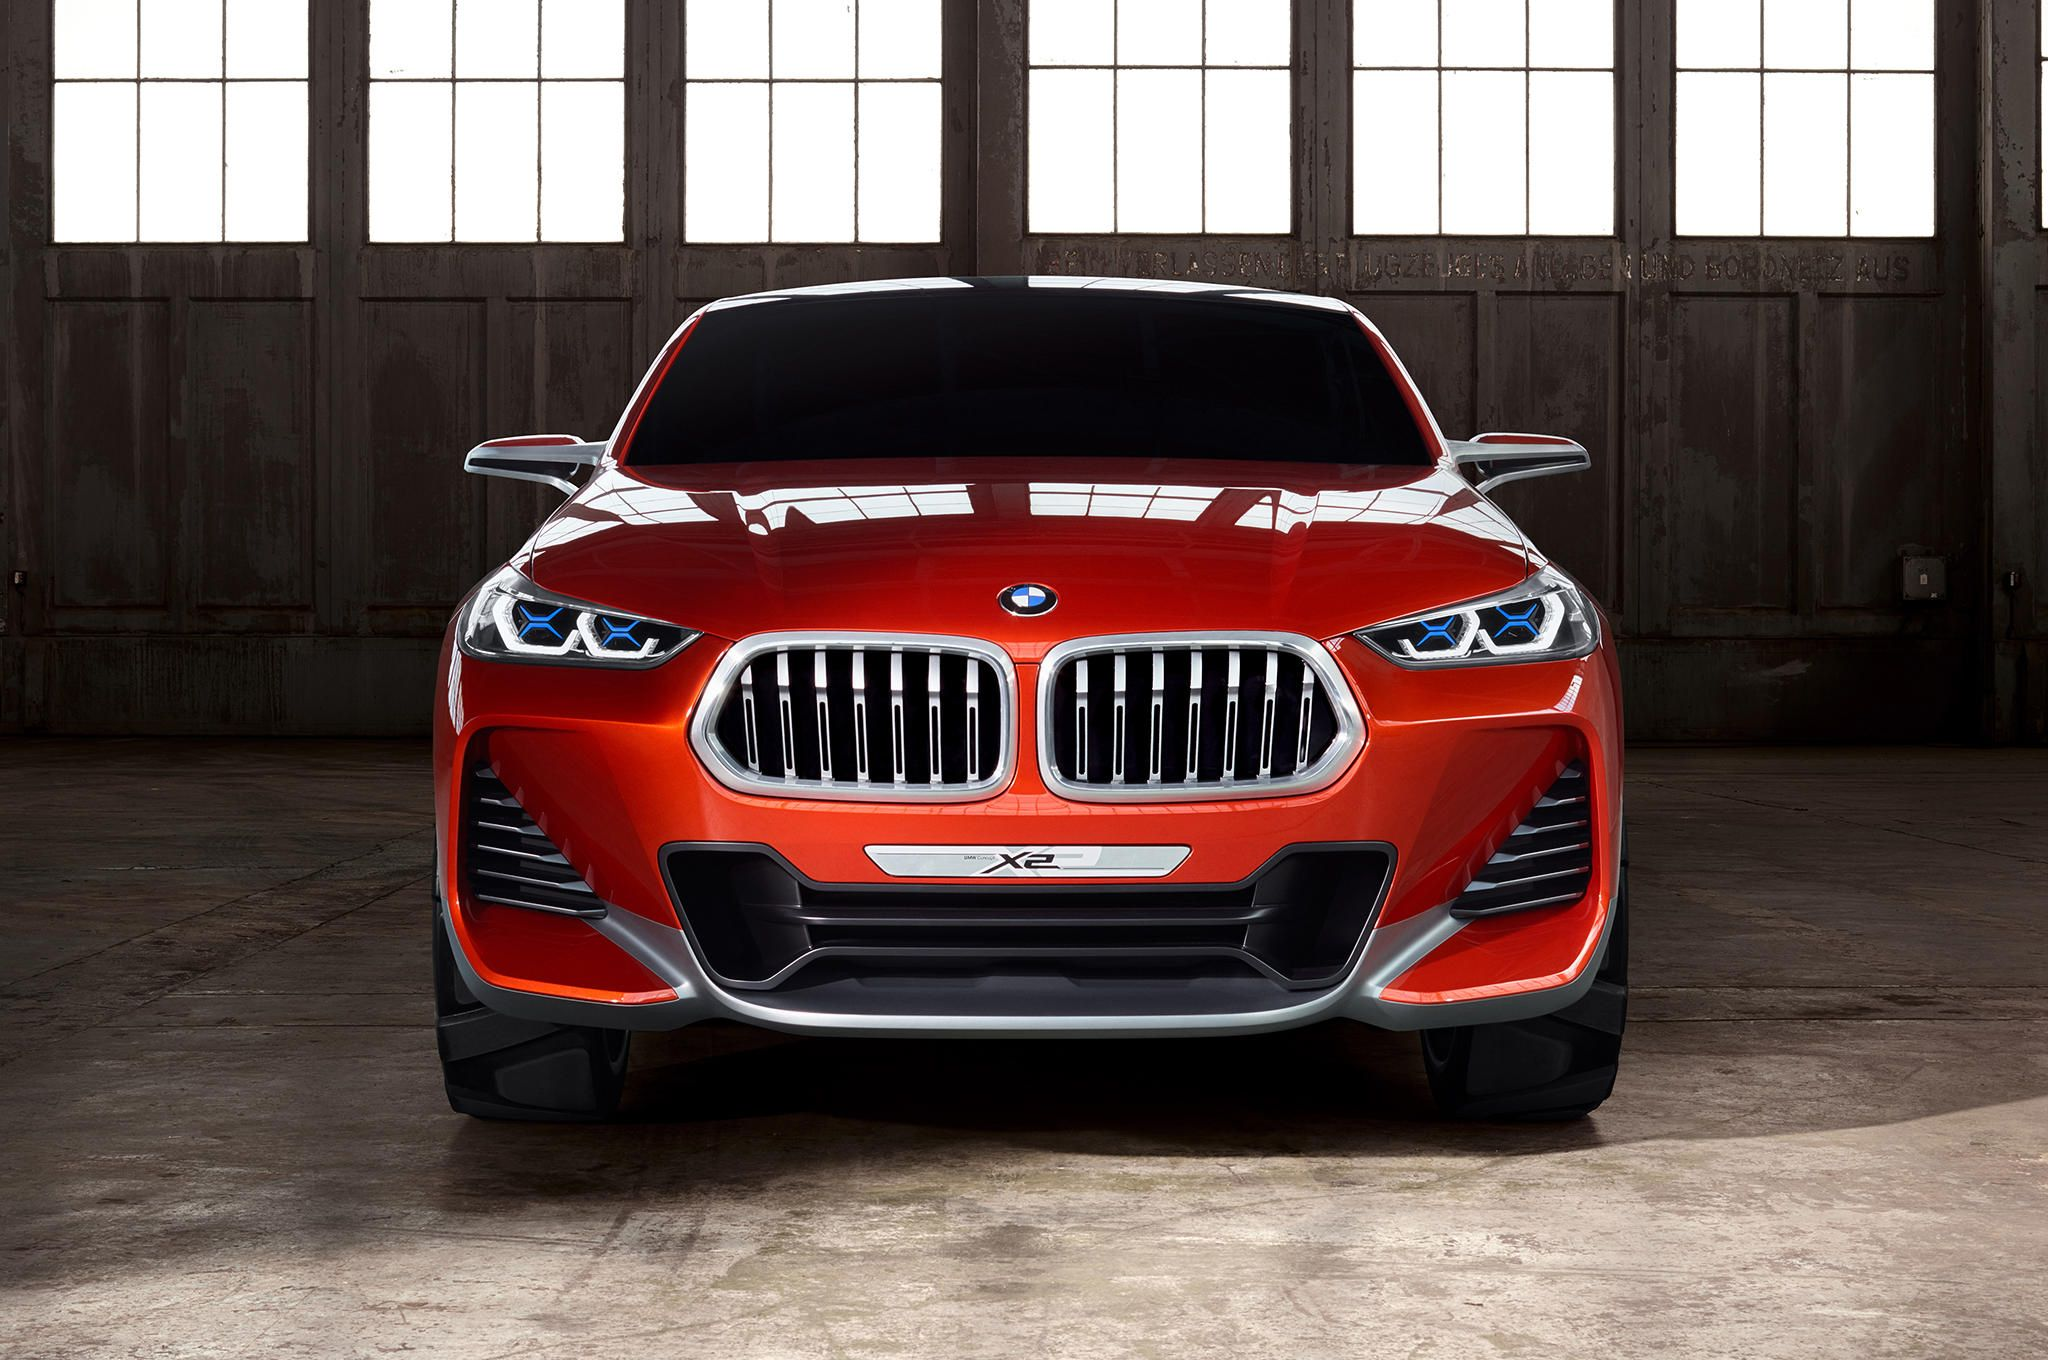 Bmw x2 concept unveiled in paris gallery via motor trend news iphone app